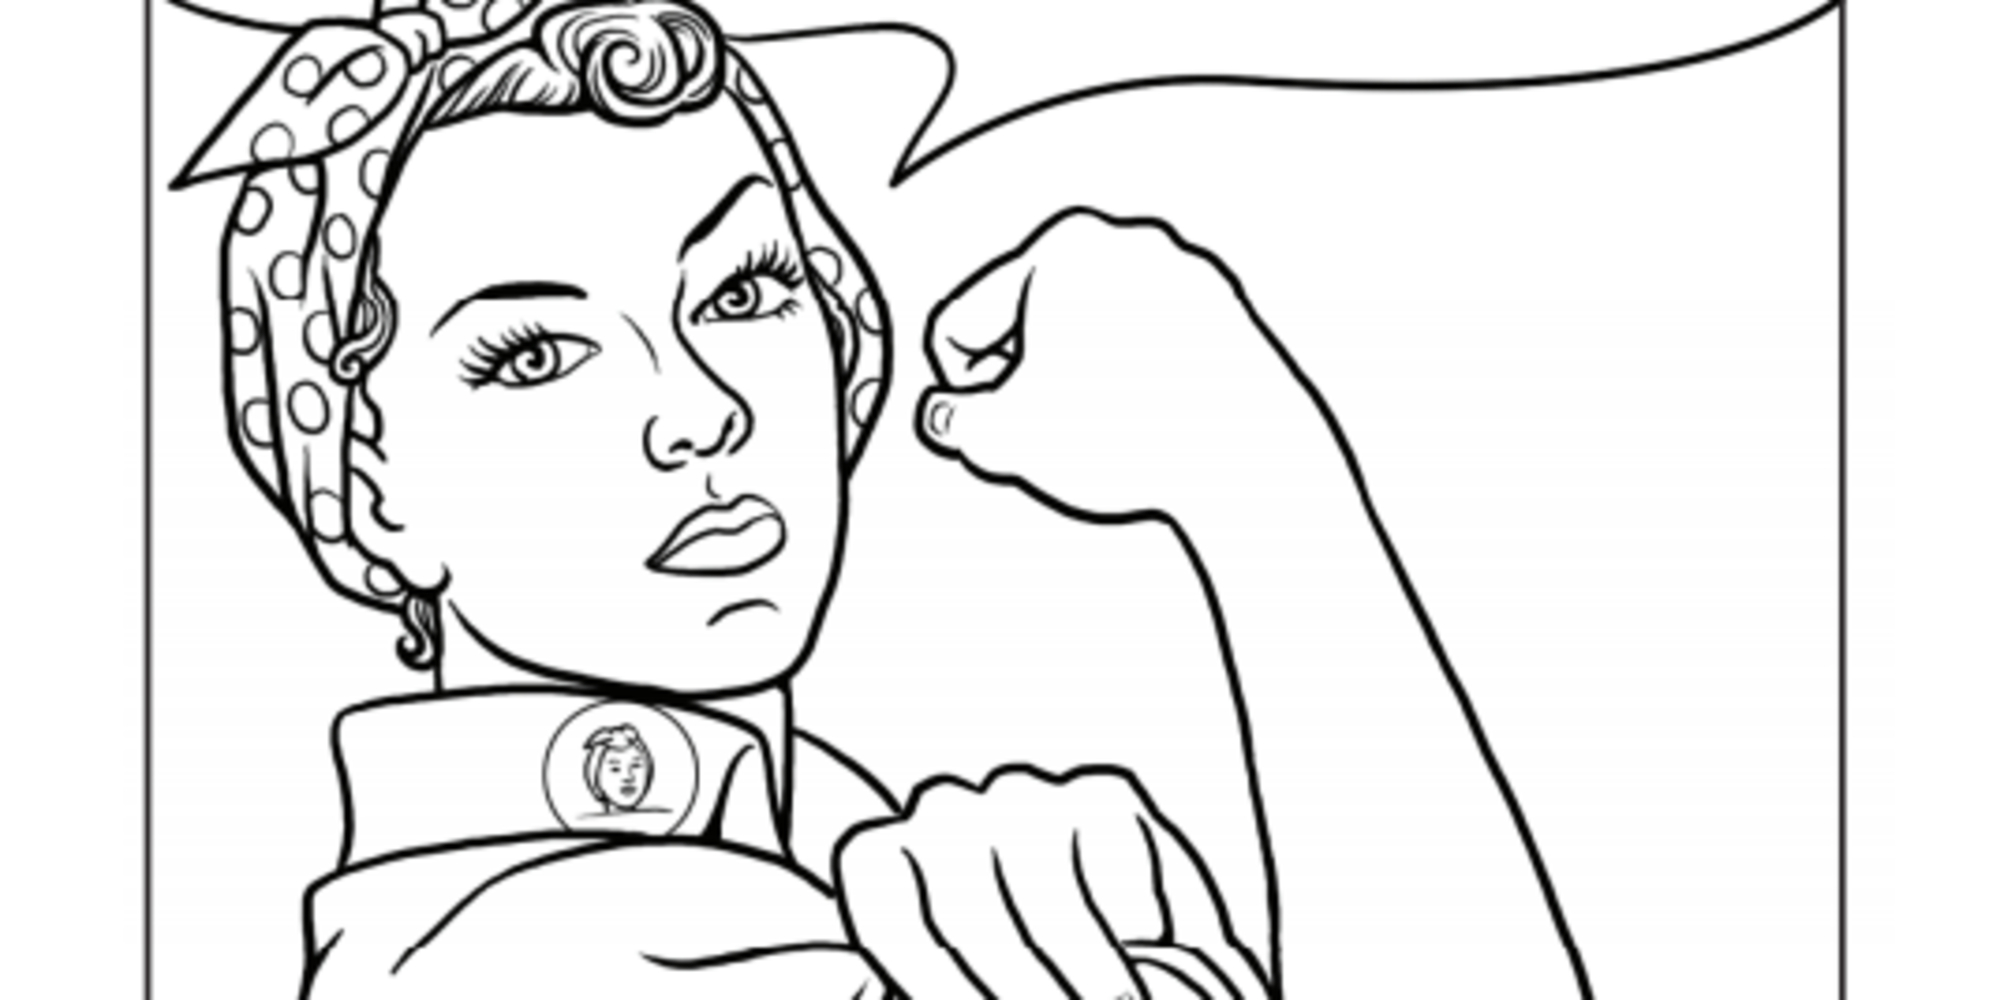 Sacagawea Coloring Pages  to Print 1q - Save it to your computer